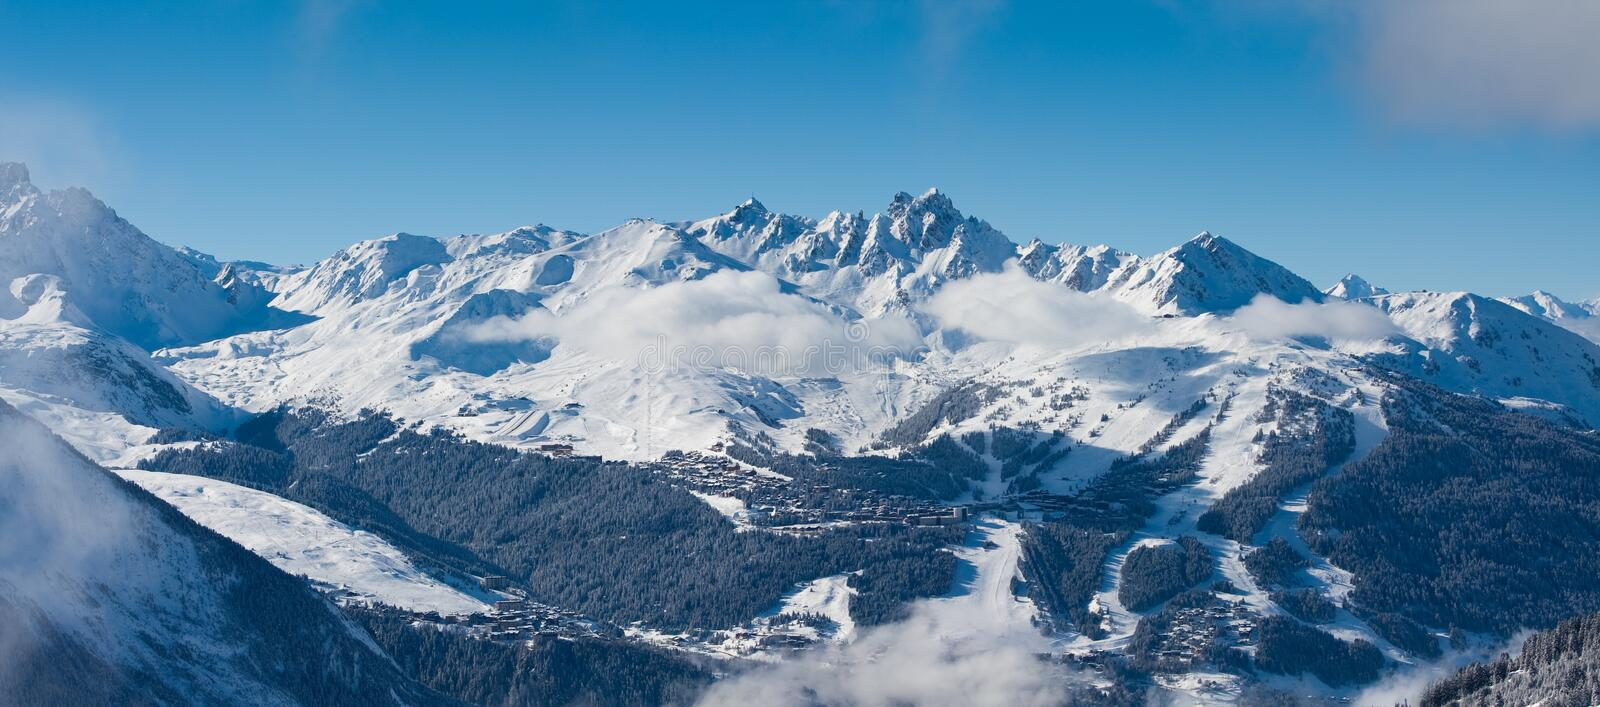 Mening over Courchevel, panorama royalty-vrije stock foto's